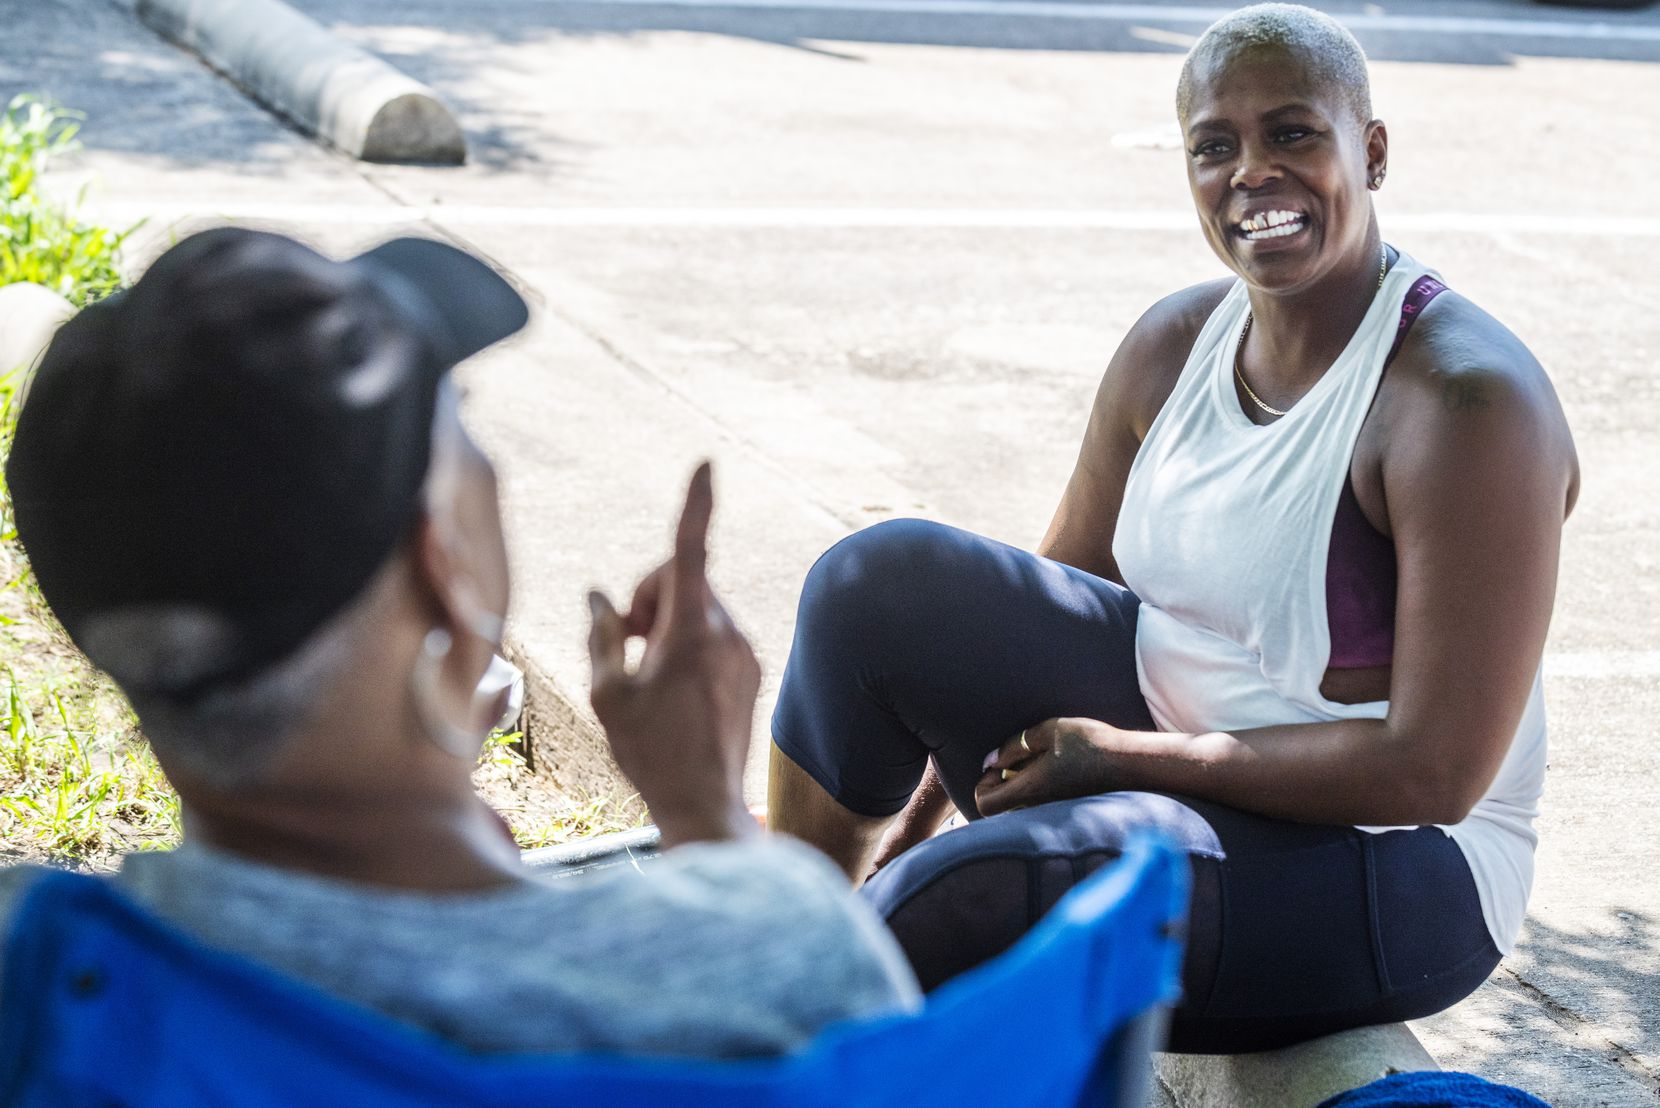 Kyna Bradford, 44 (right), visits in between rounds of a softball tournament at Kiest Park.